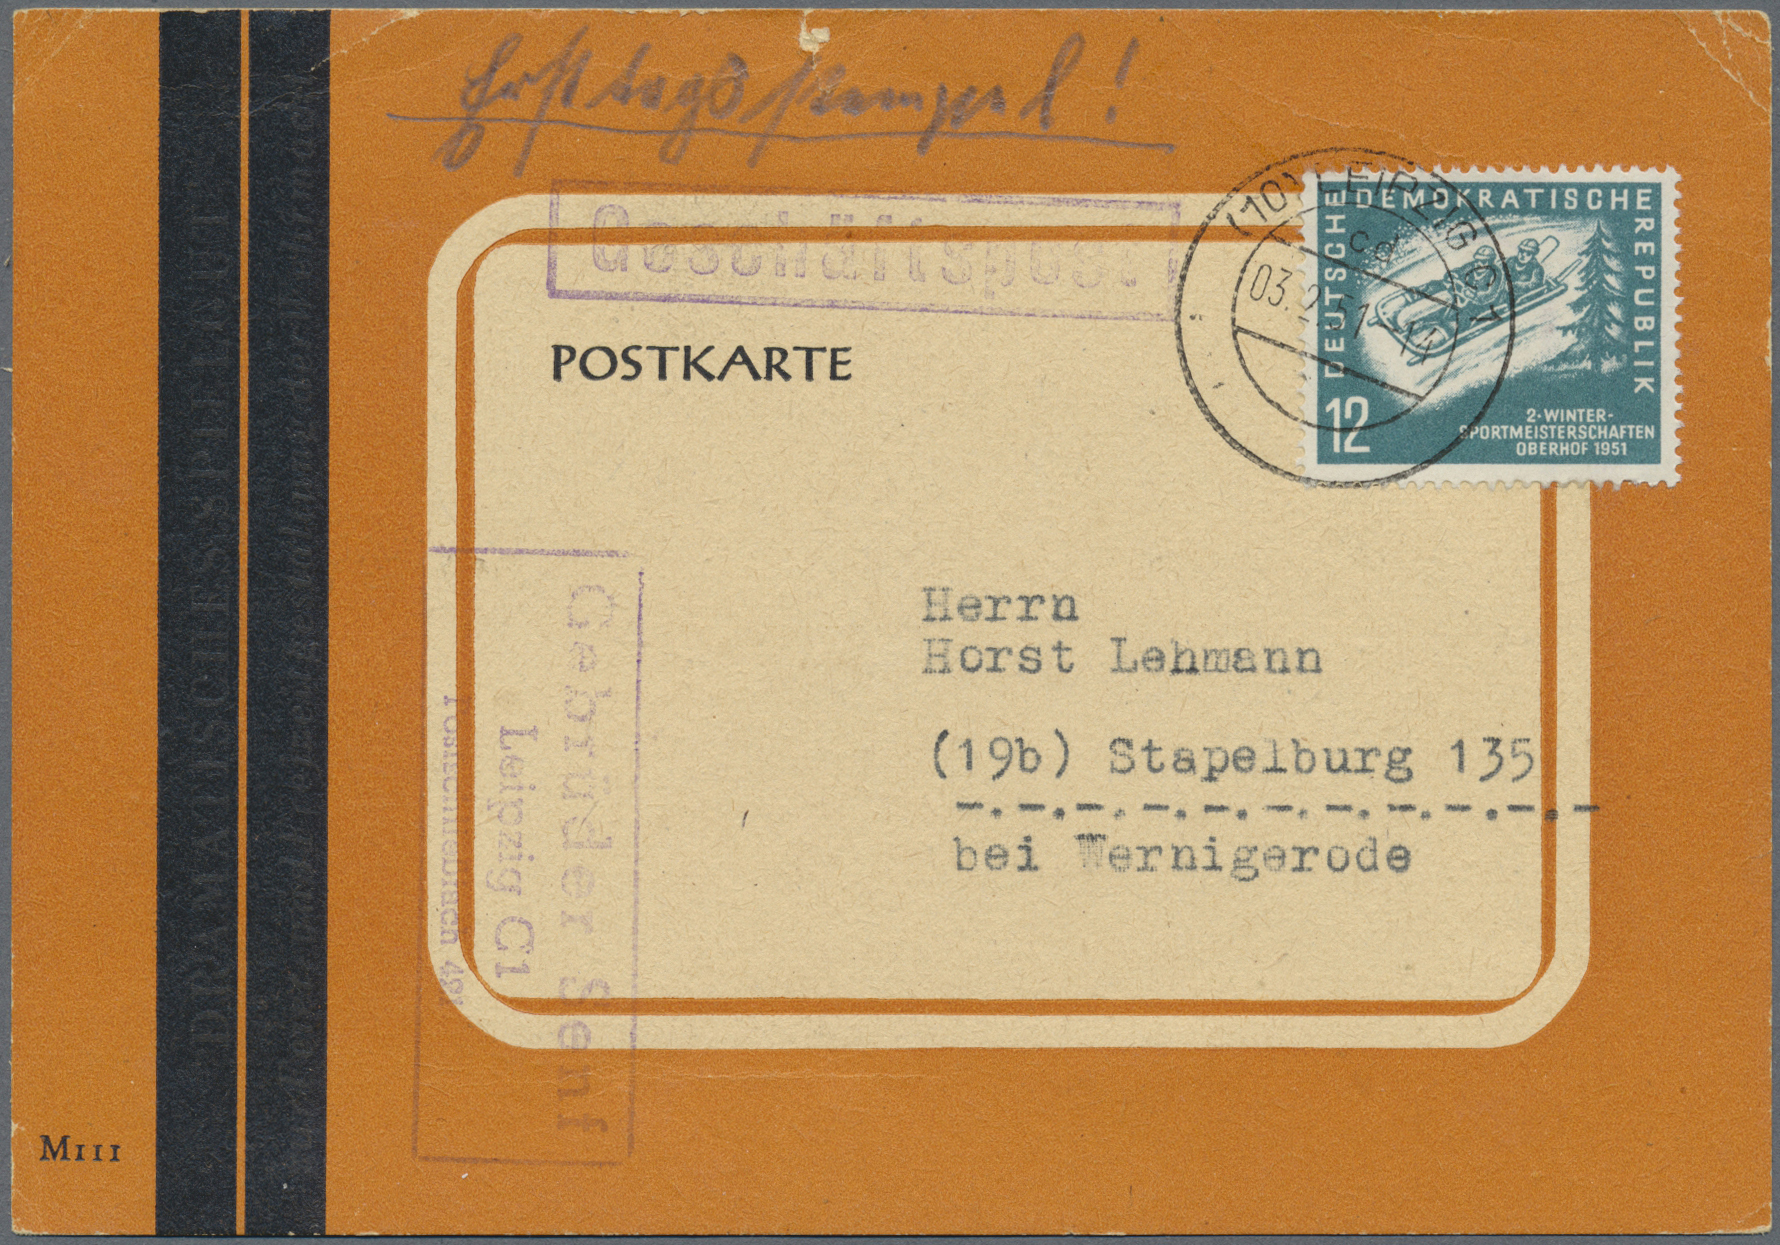 Lot 37992 - ddr  -  Auktionshaus Christoph Gärtner GmbH & Co. KG Collections Germany,  Collections Supplement, Surprise boxes #39 Day 7